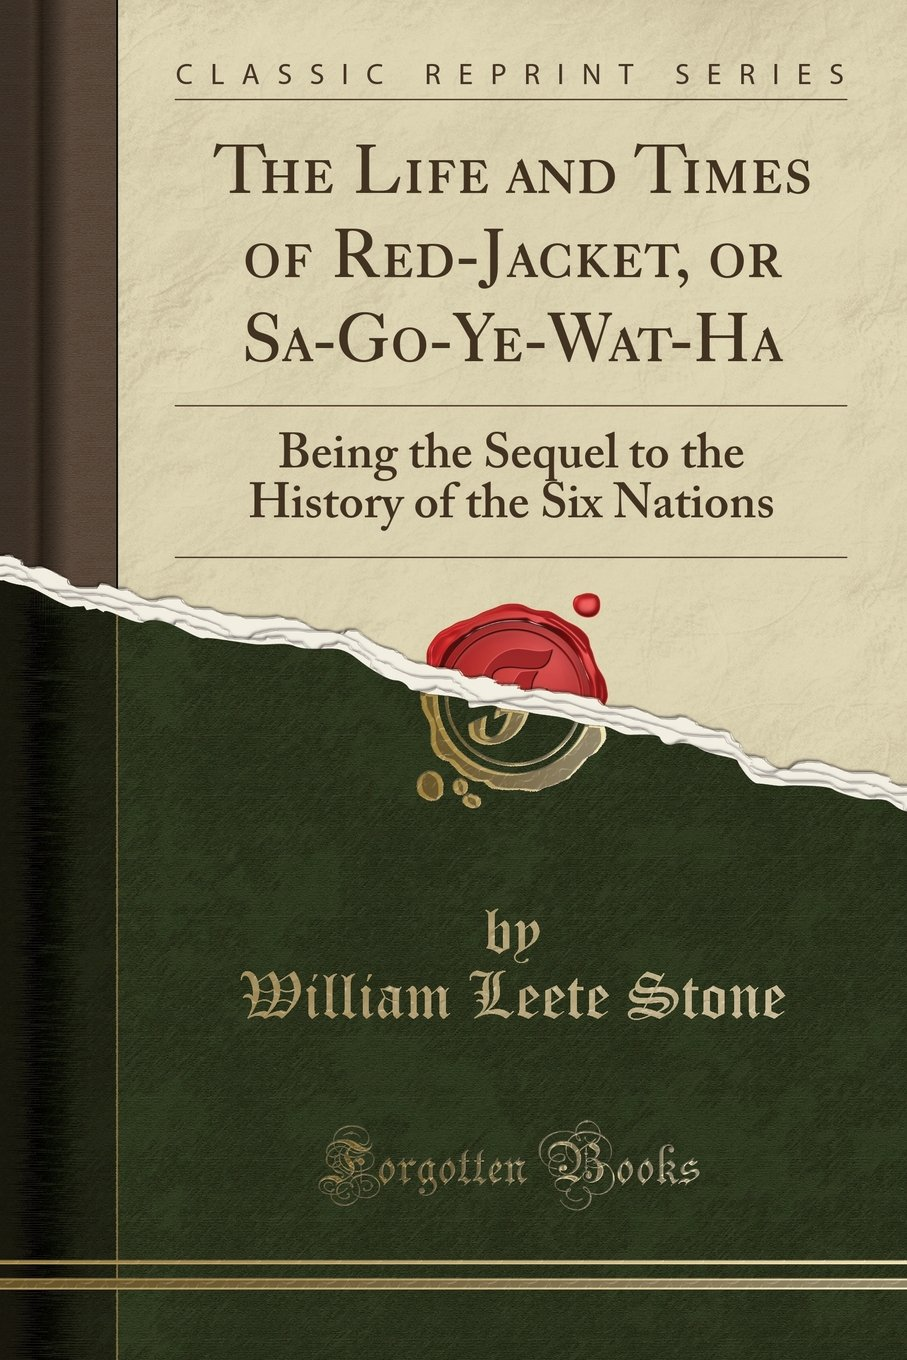 Download The Life and Times of Red-Jacket, or Sa-Go-Ye-Wat-Ha: Being the Sequel to the History of the Six Nations (Classic Reprint) pdf epub